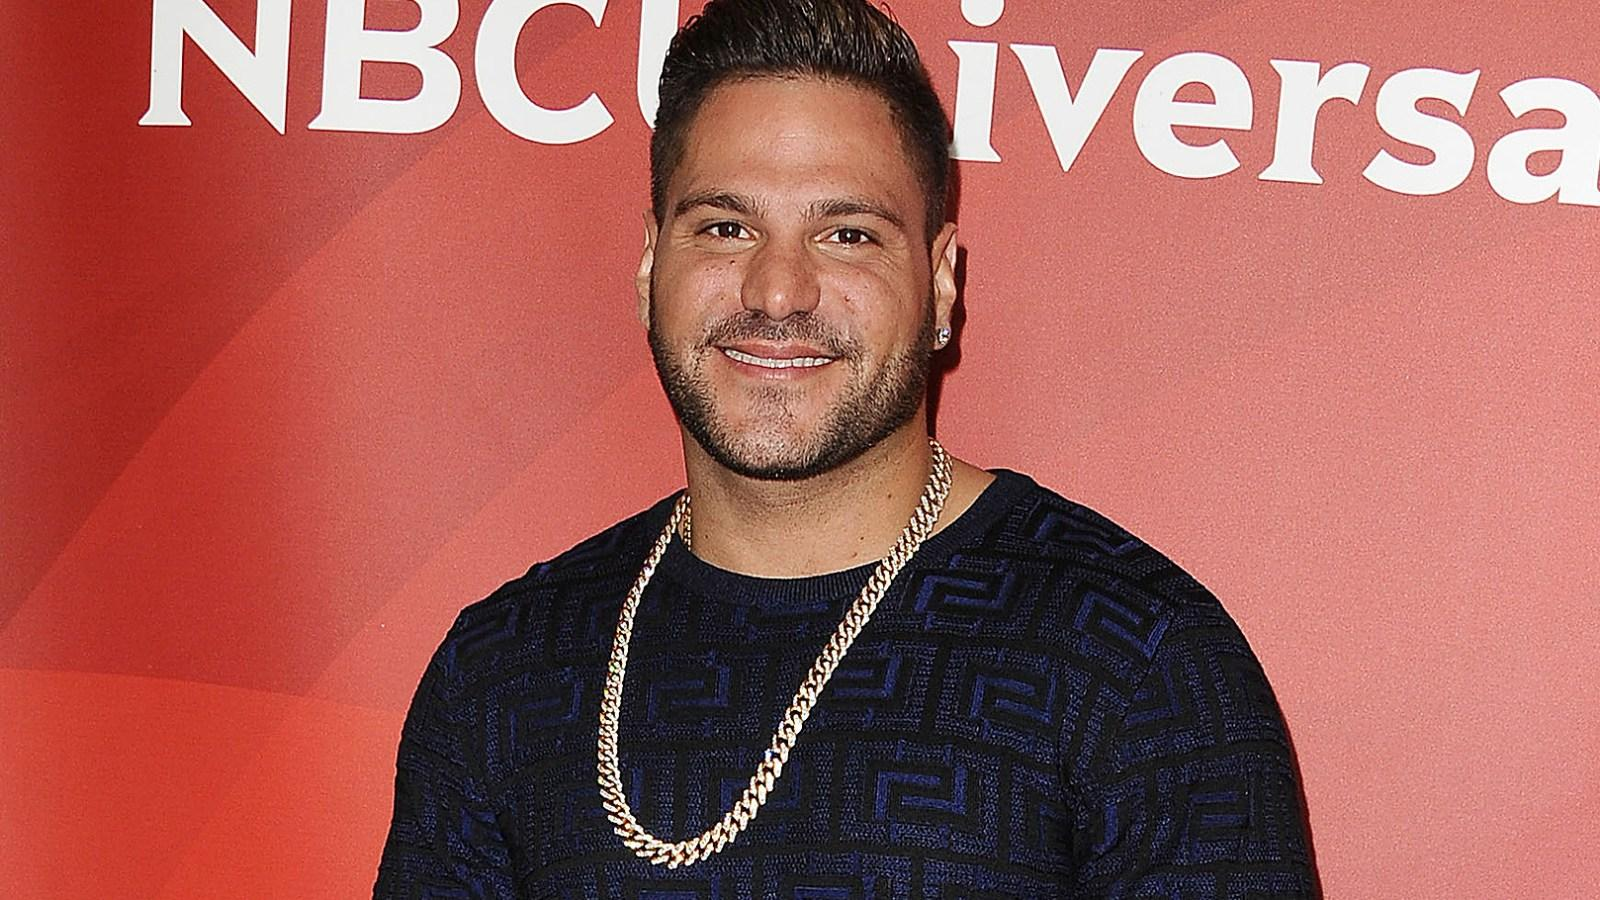 Ronnie Magro Just Pled Not Guilty To Charges But He Will Not Be Able To See His Daughter Because Jen Harley Just Received A Protection Order Against Him